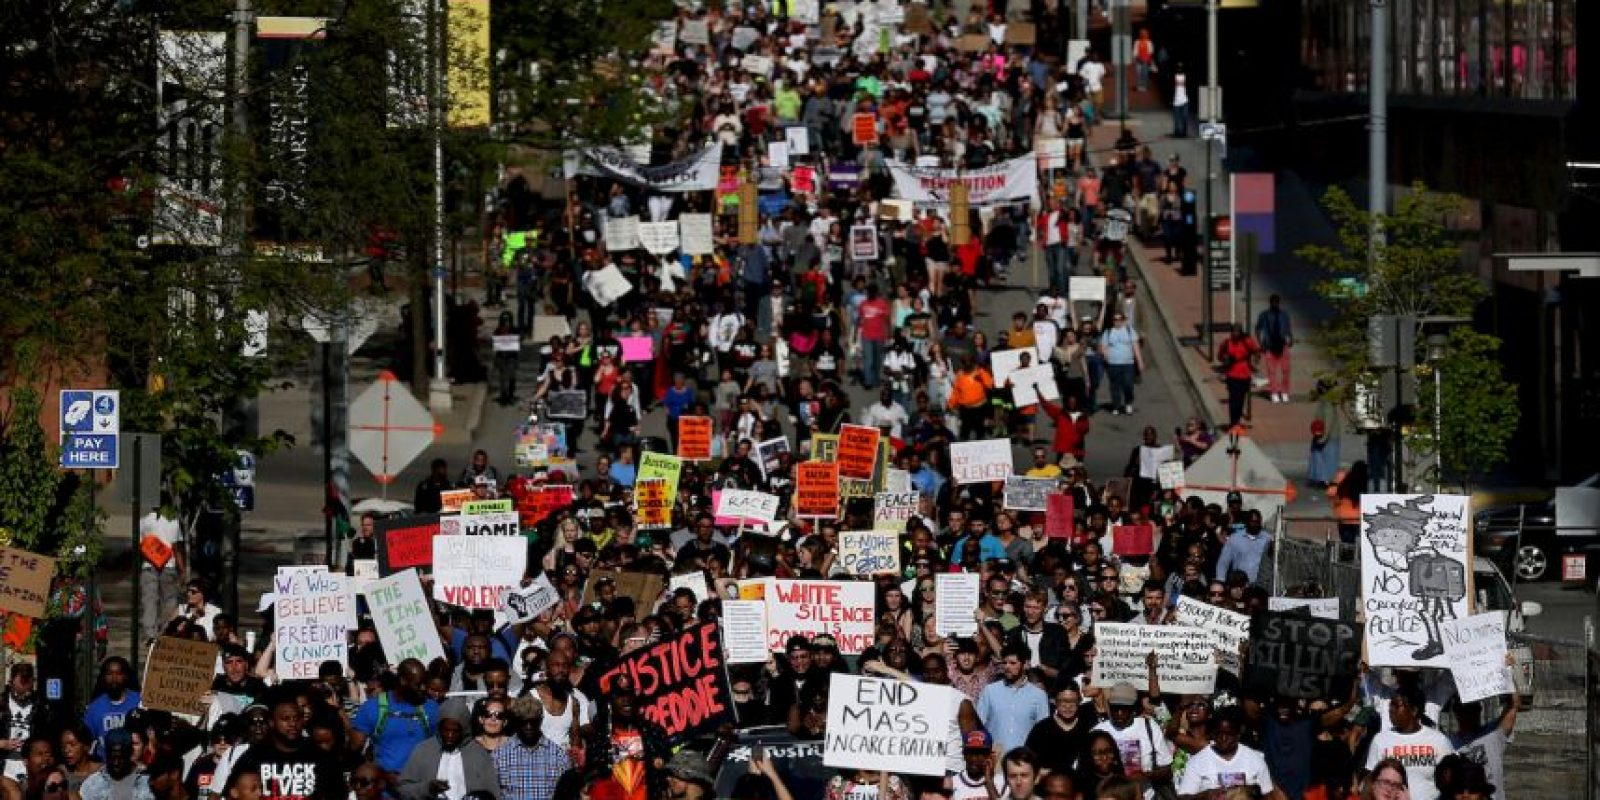 Activistas del movimiento Black Lives Matter. Foto: Getty Images